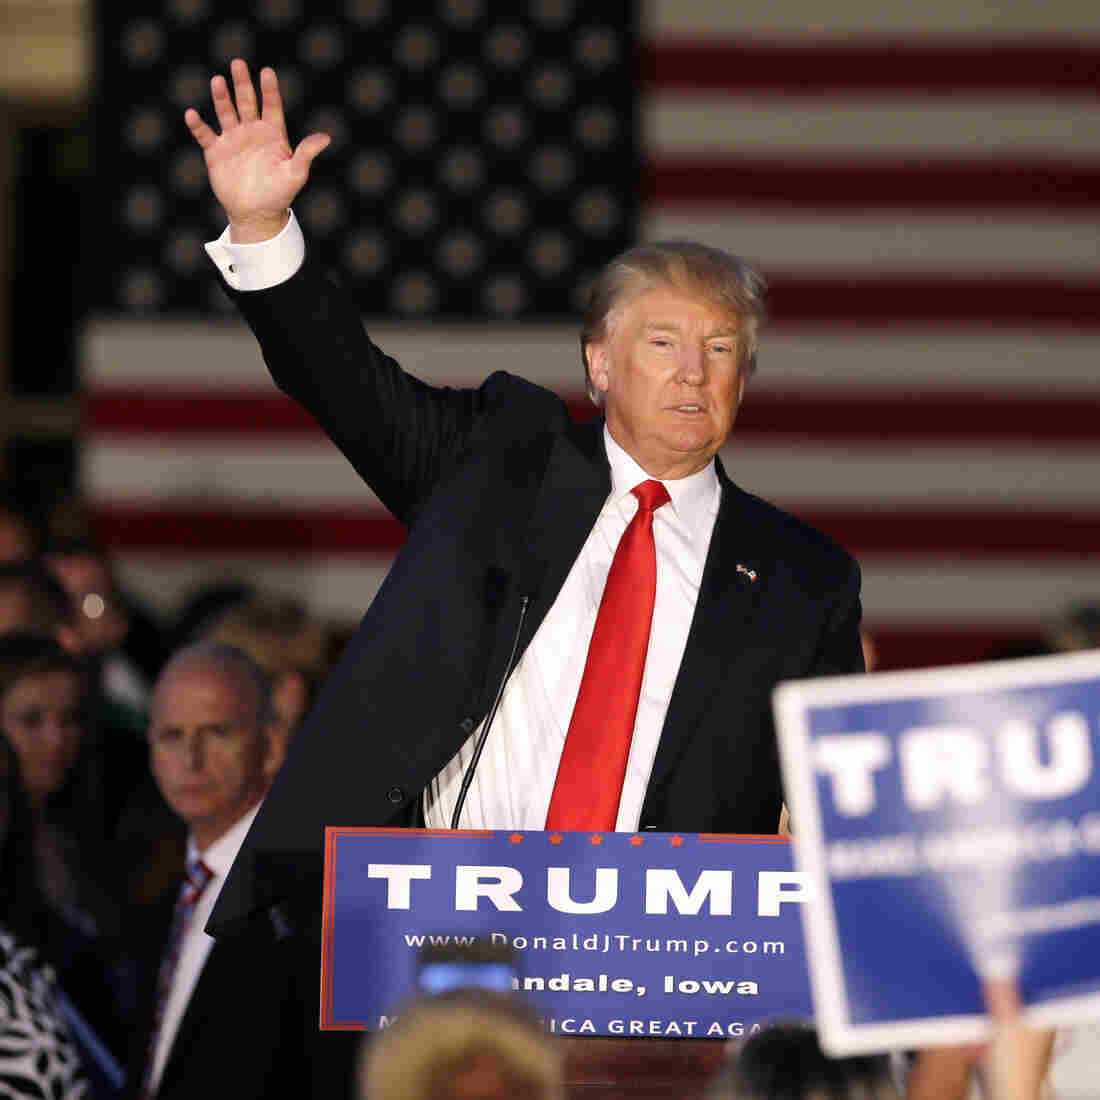 Donald Trump waves at the end of a rally at Urbandale High School, in Urbandale, Iowa, on Sunday.